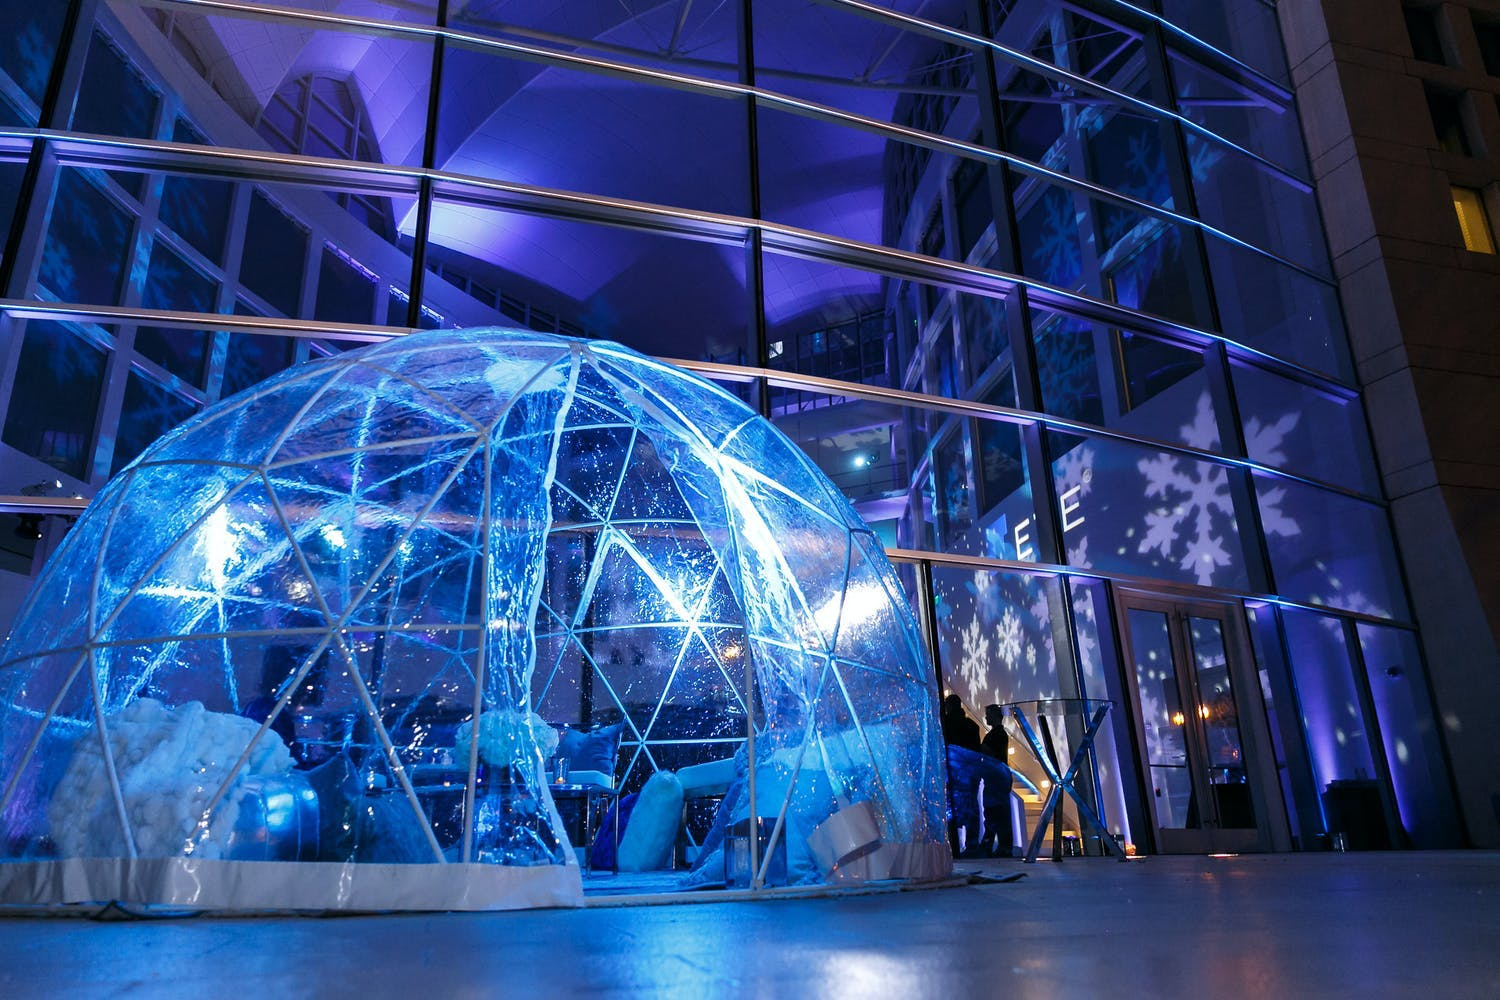 Transparent glamping igloo is lit up by blue lights in front of a wall of windows at winter blue corporate event party | PartySlate